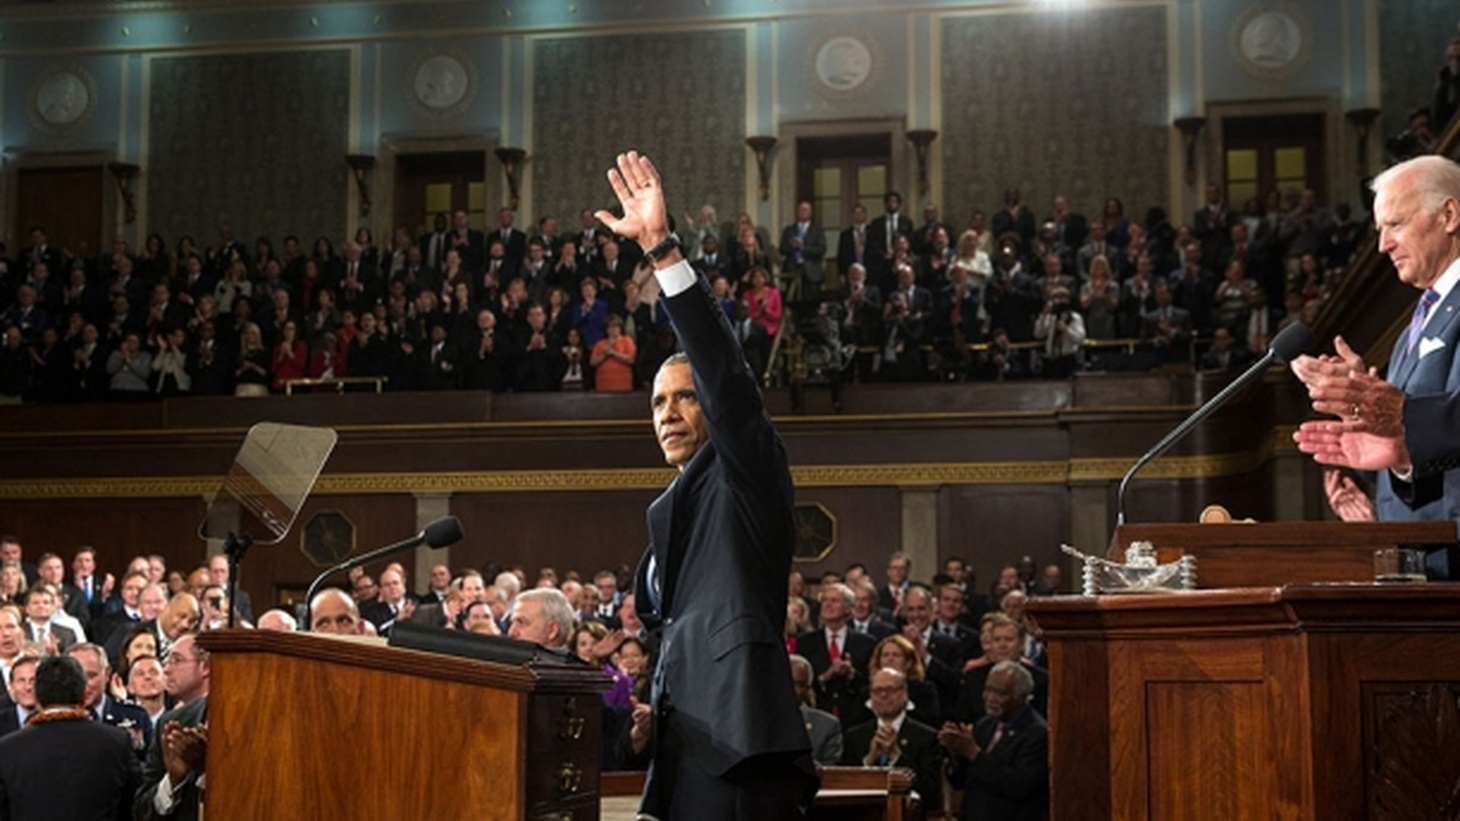 Tonight, President Obama delivers his seventh and final State of the Union address. KCRW will carry it live at 6pm.